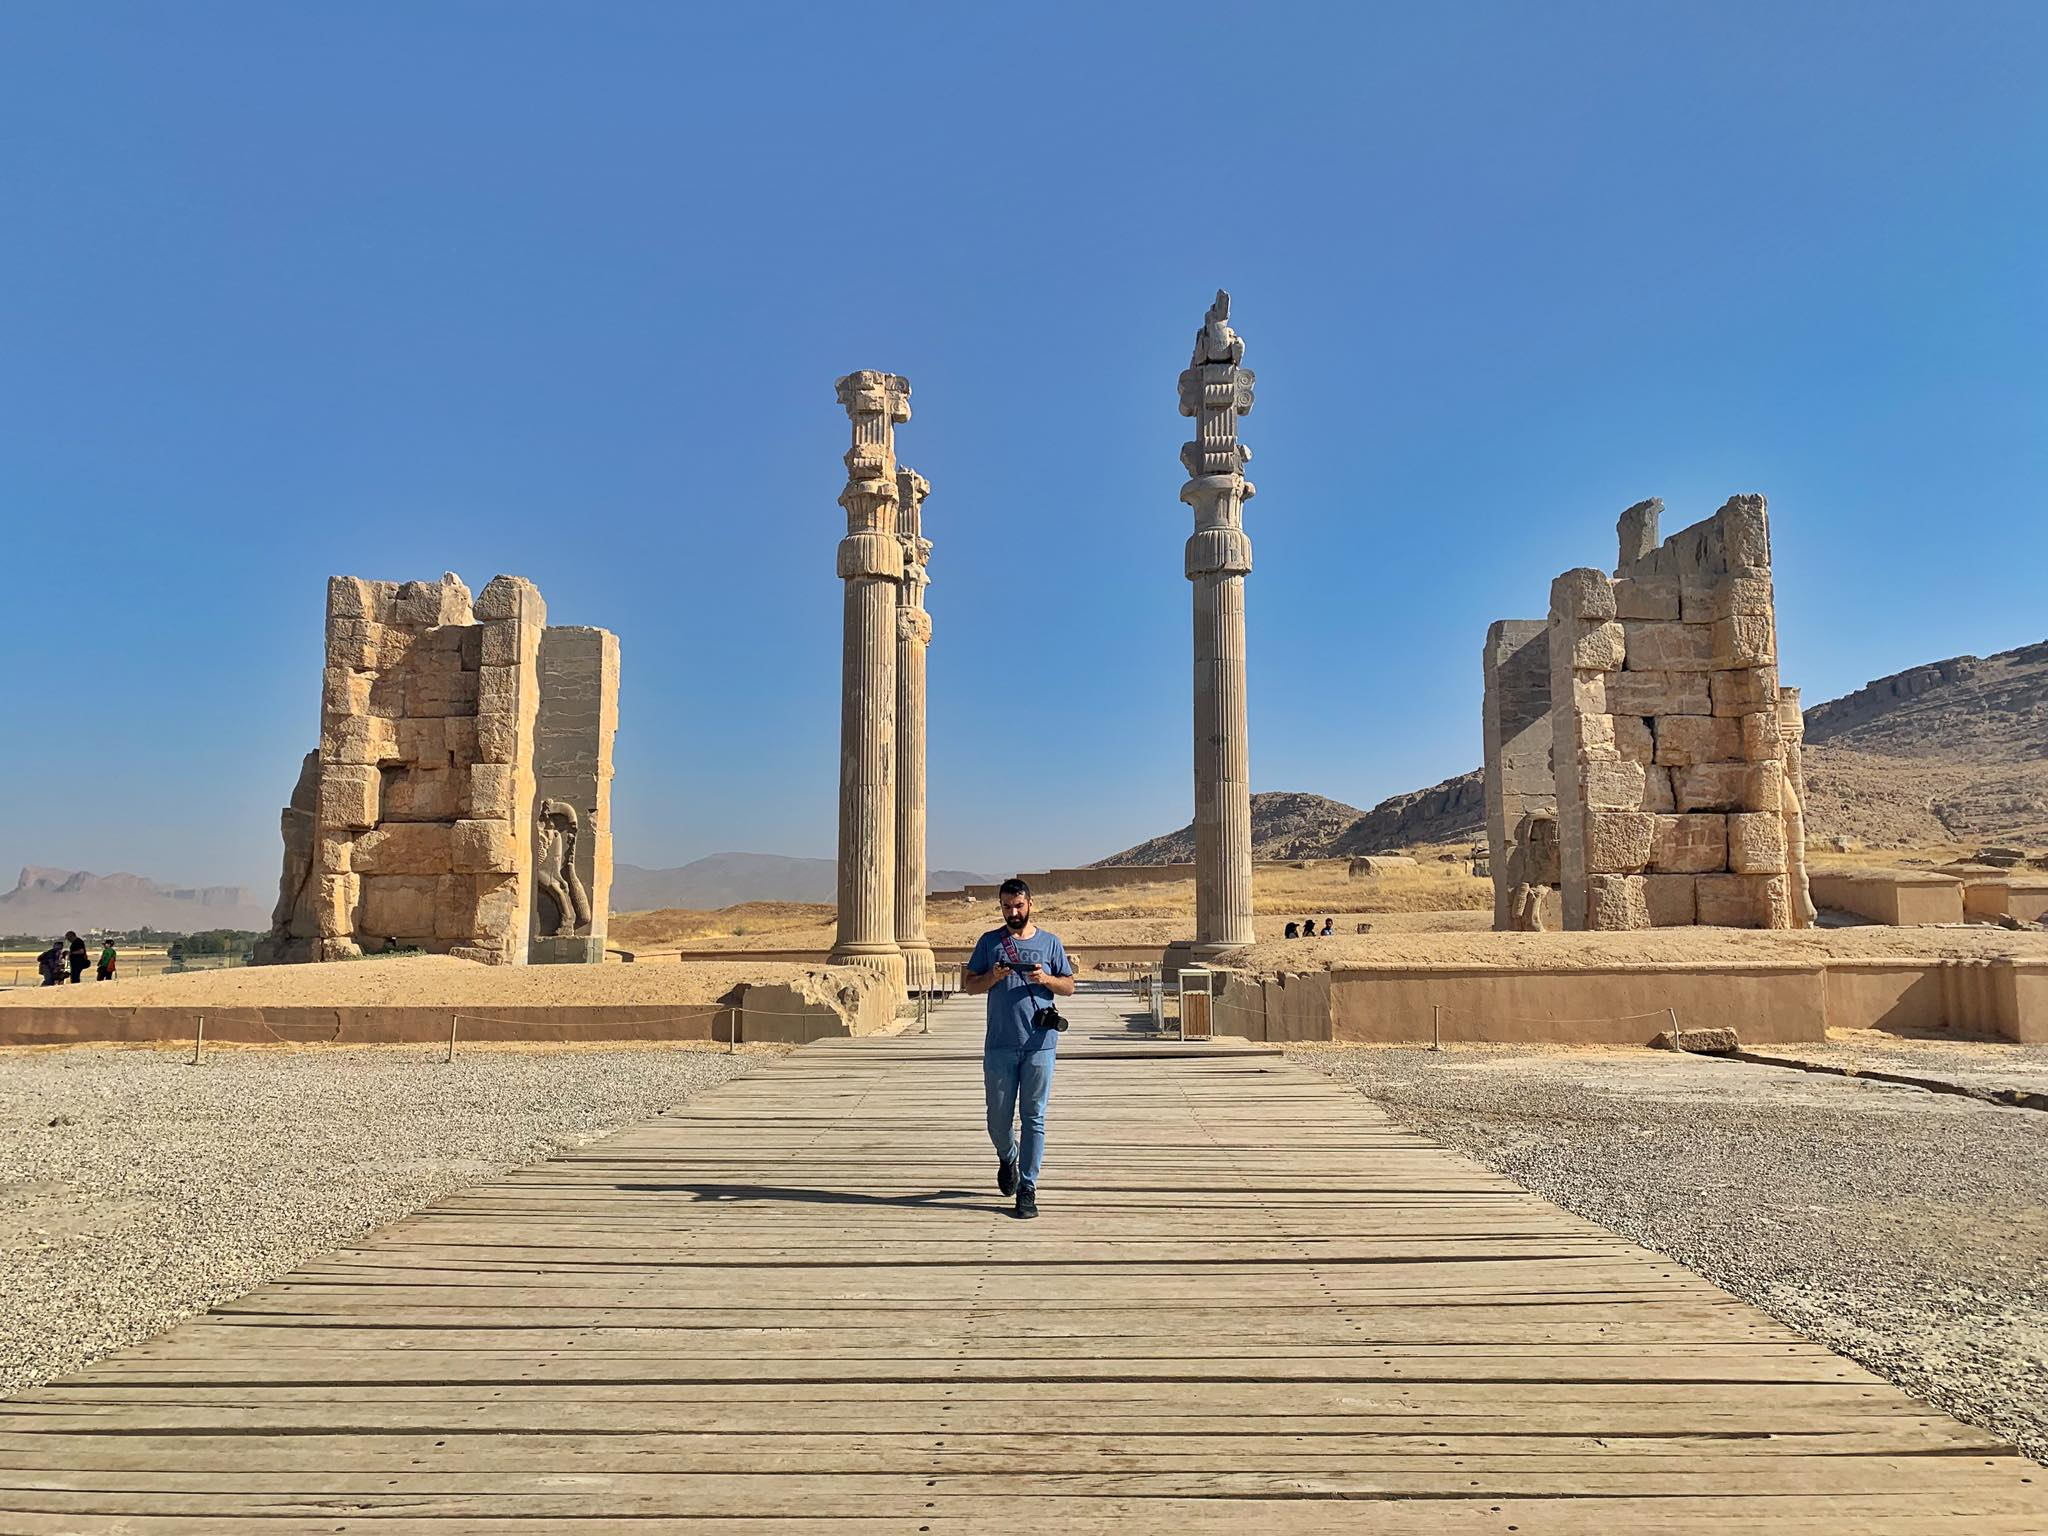 Kach Solo Travels in 2019 UNESCO heritages sites of Persepolis and Pasagardae15.jpg